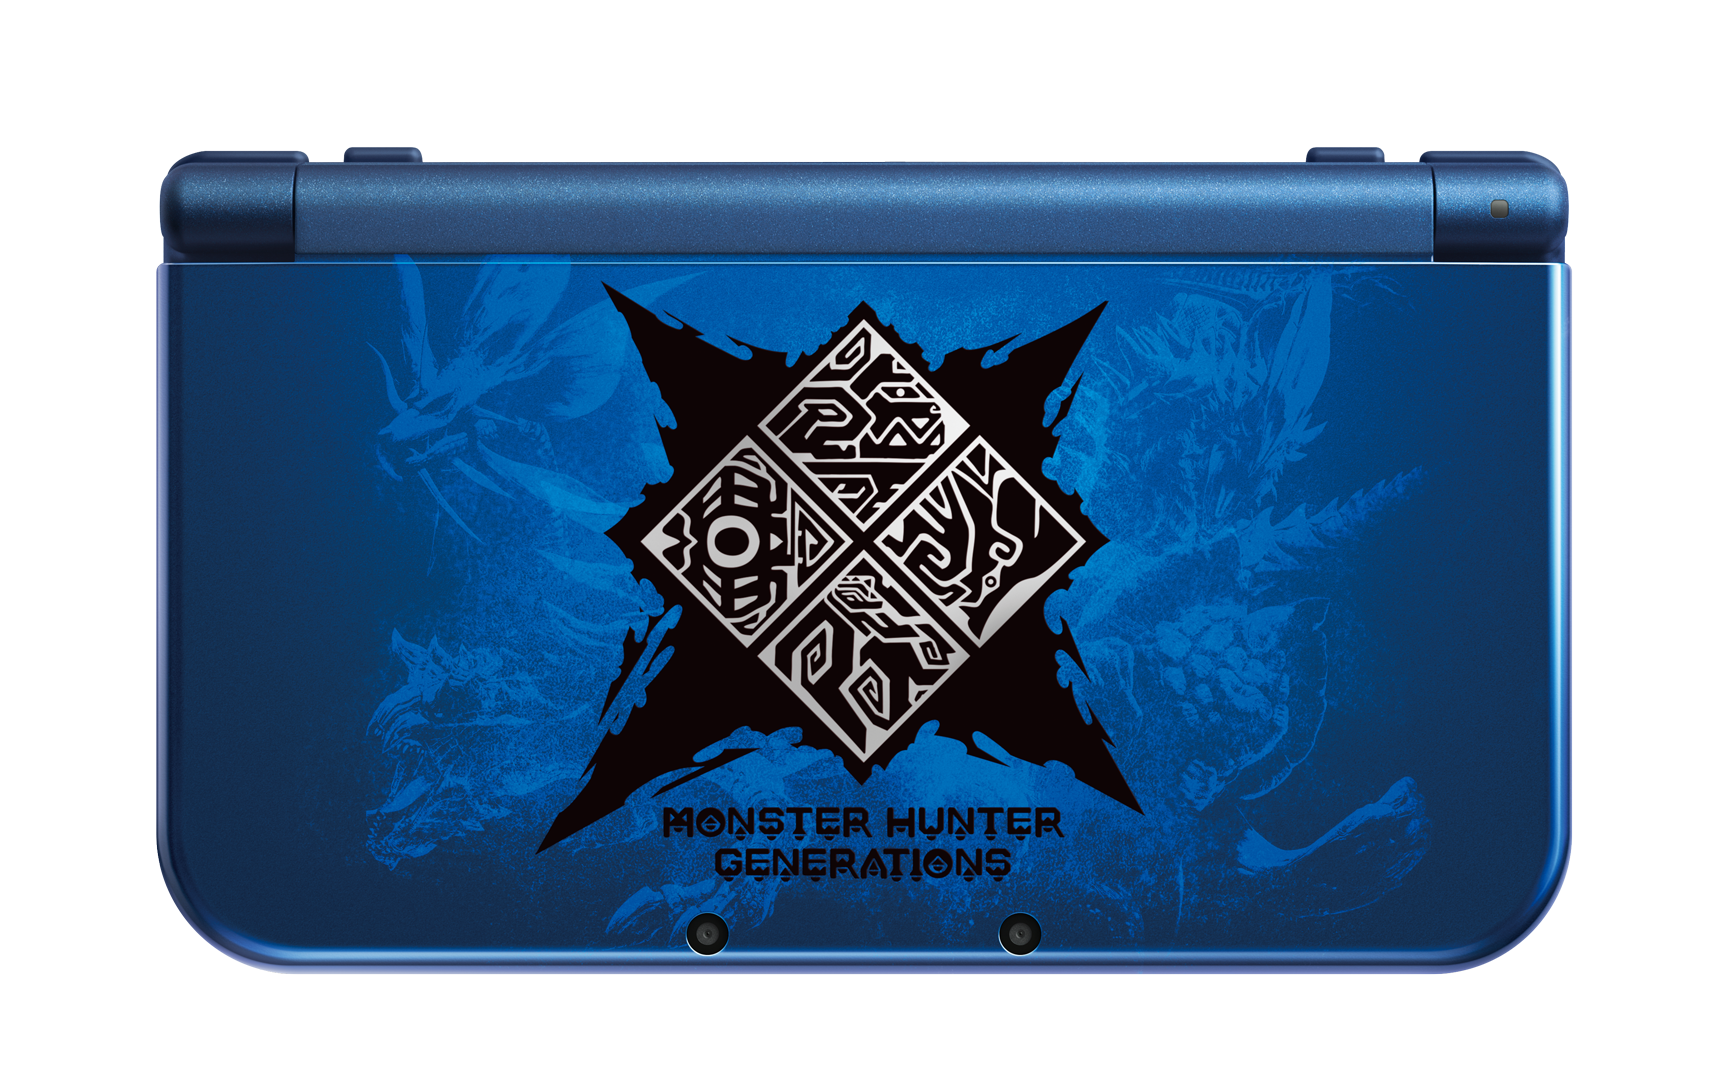 Join The Hunt in Monster Hunter Generations! Available Now on Nintendo 3DS